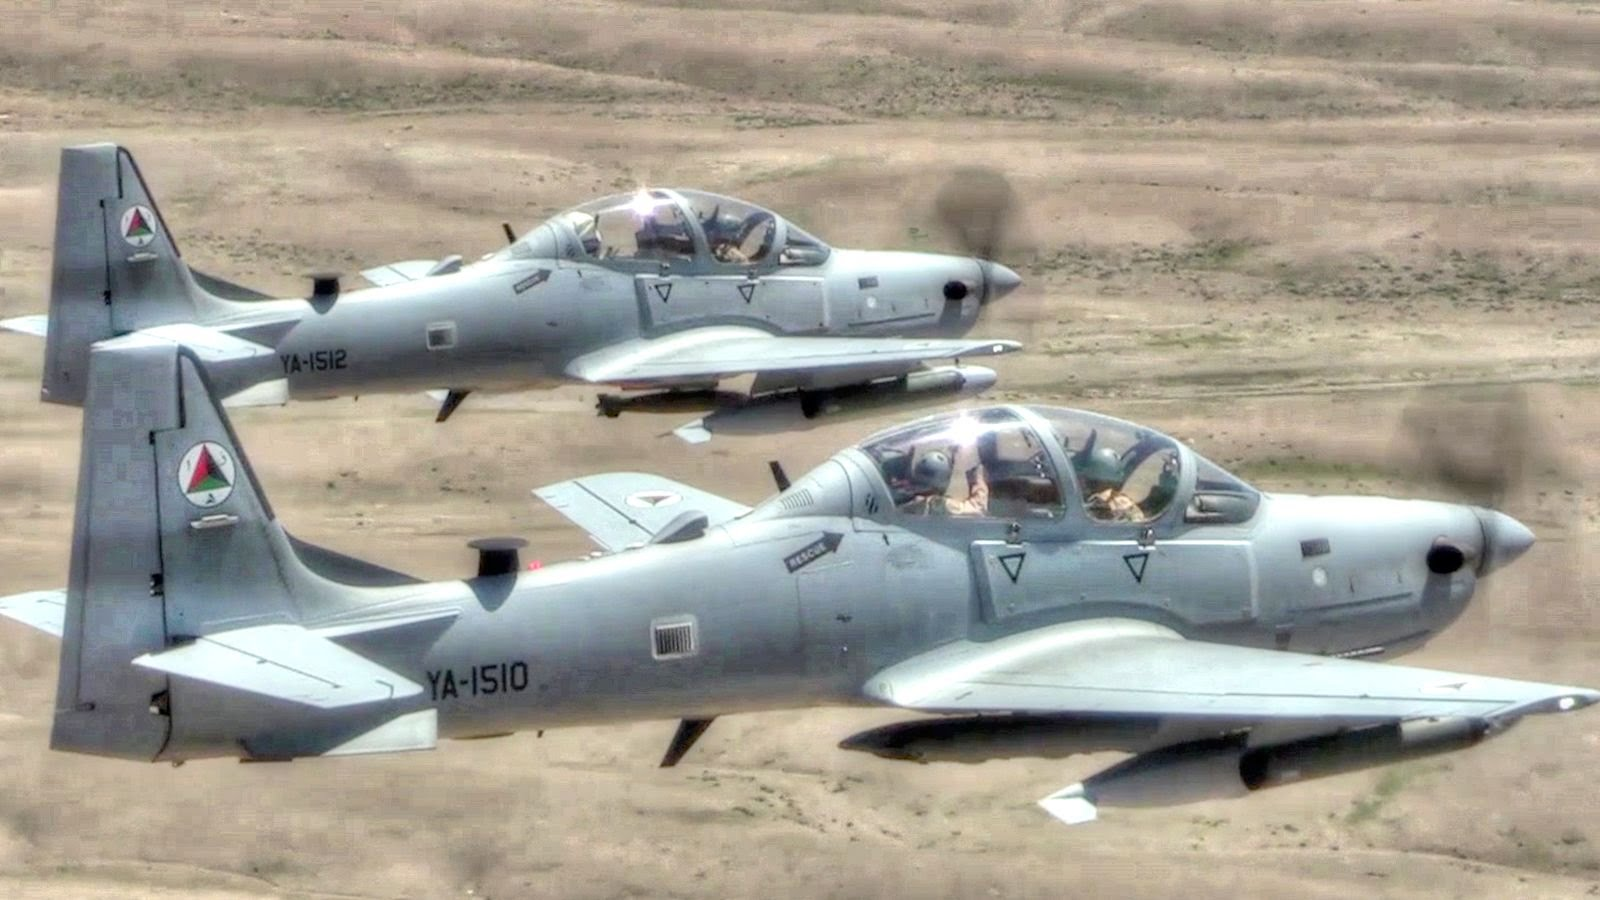 U.S. to sell 12 fighter jets, weapons to Nigeria